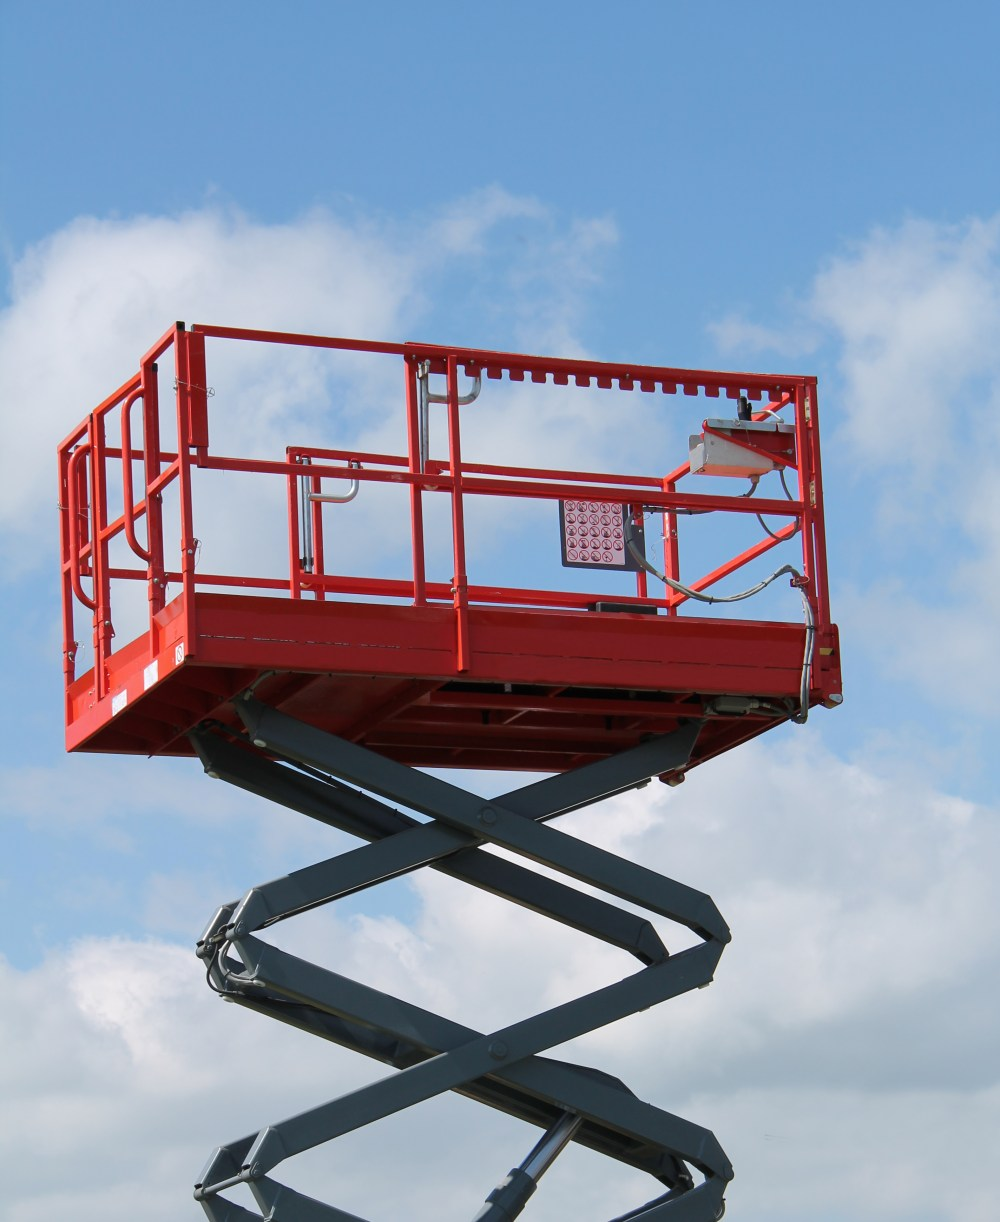 medium resolution of  how to prevent aerial lift accidents